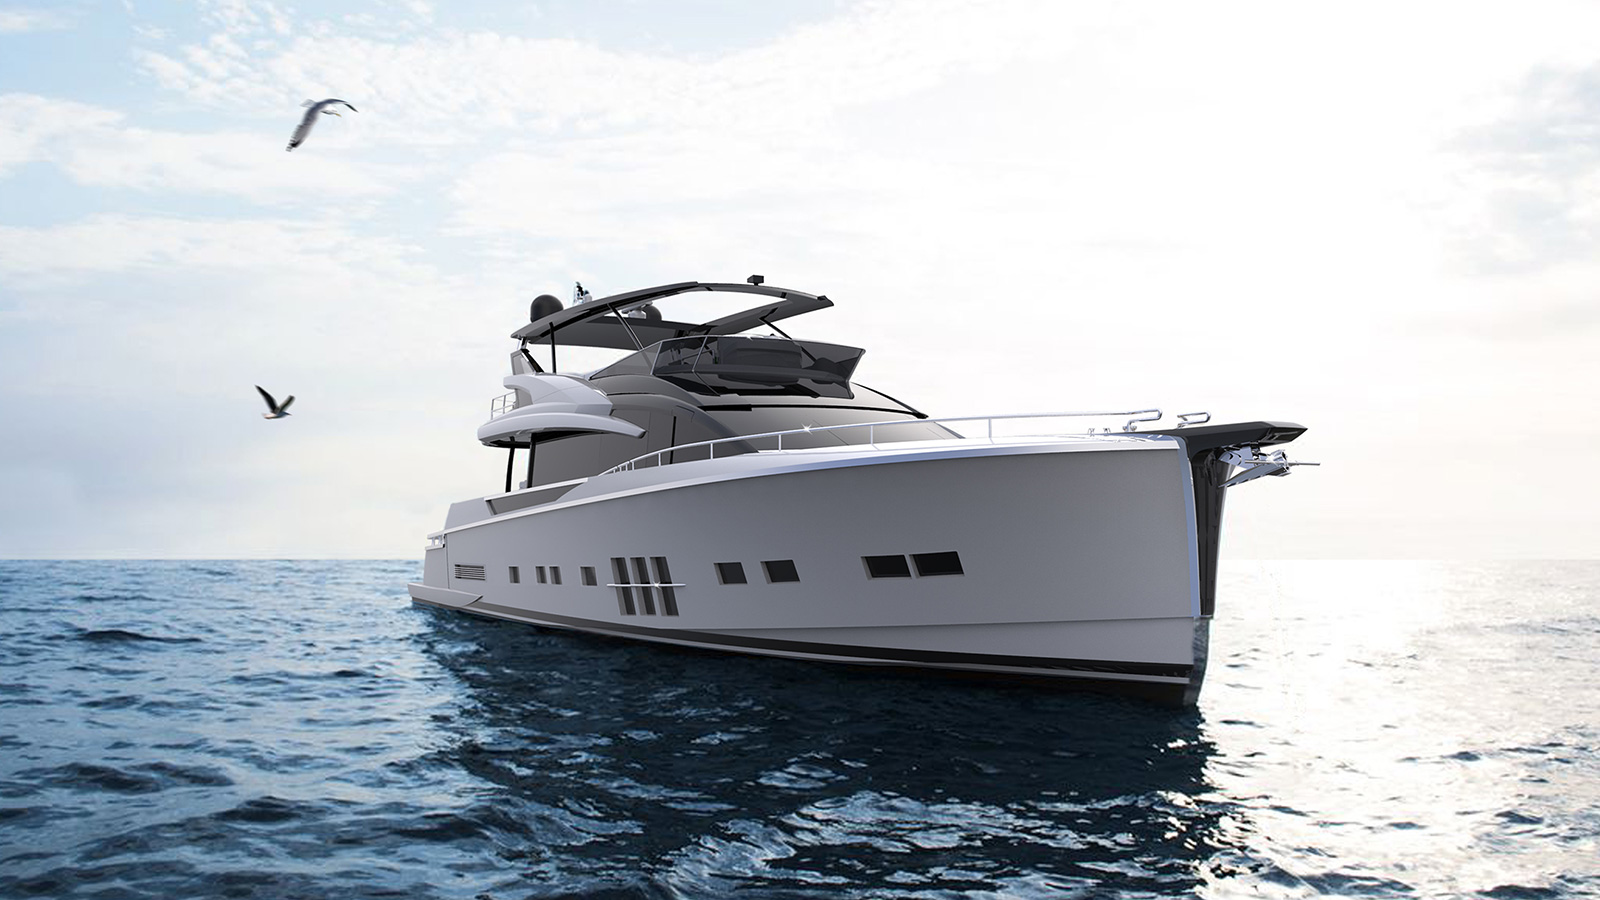 bow-view-of-the-adler-supremax-yacht